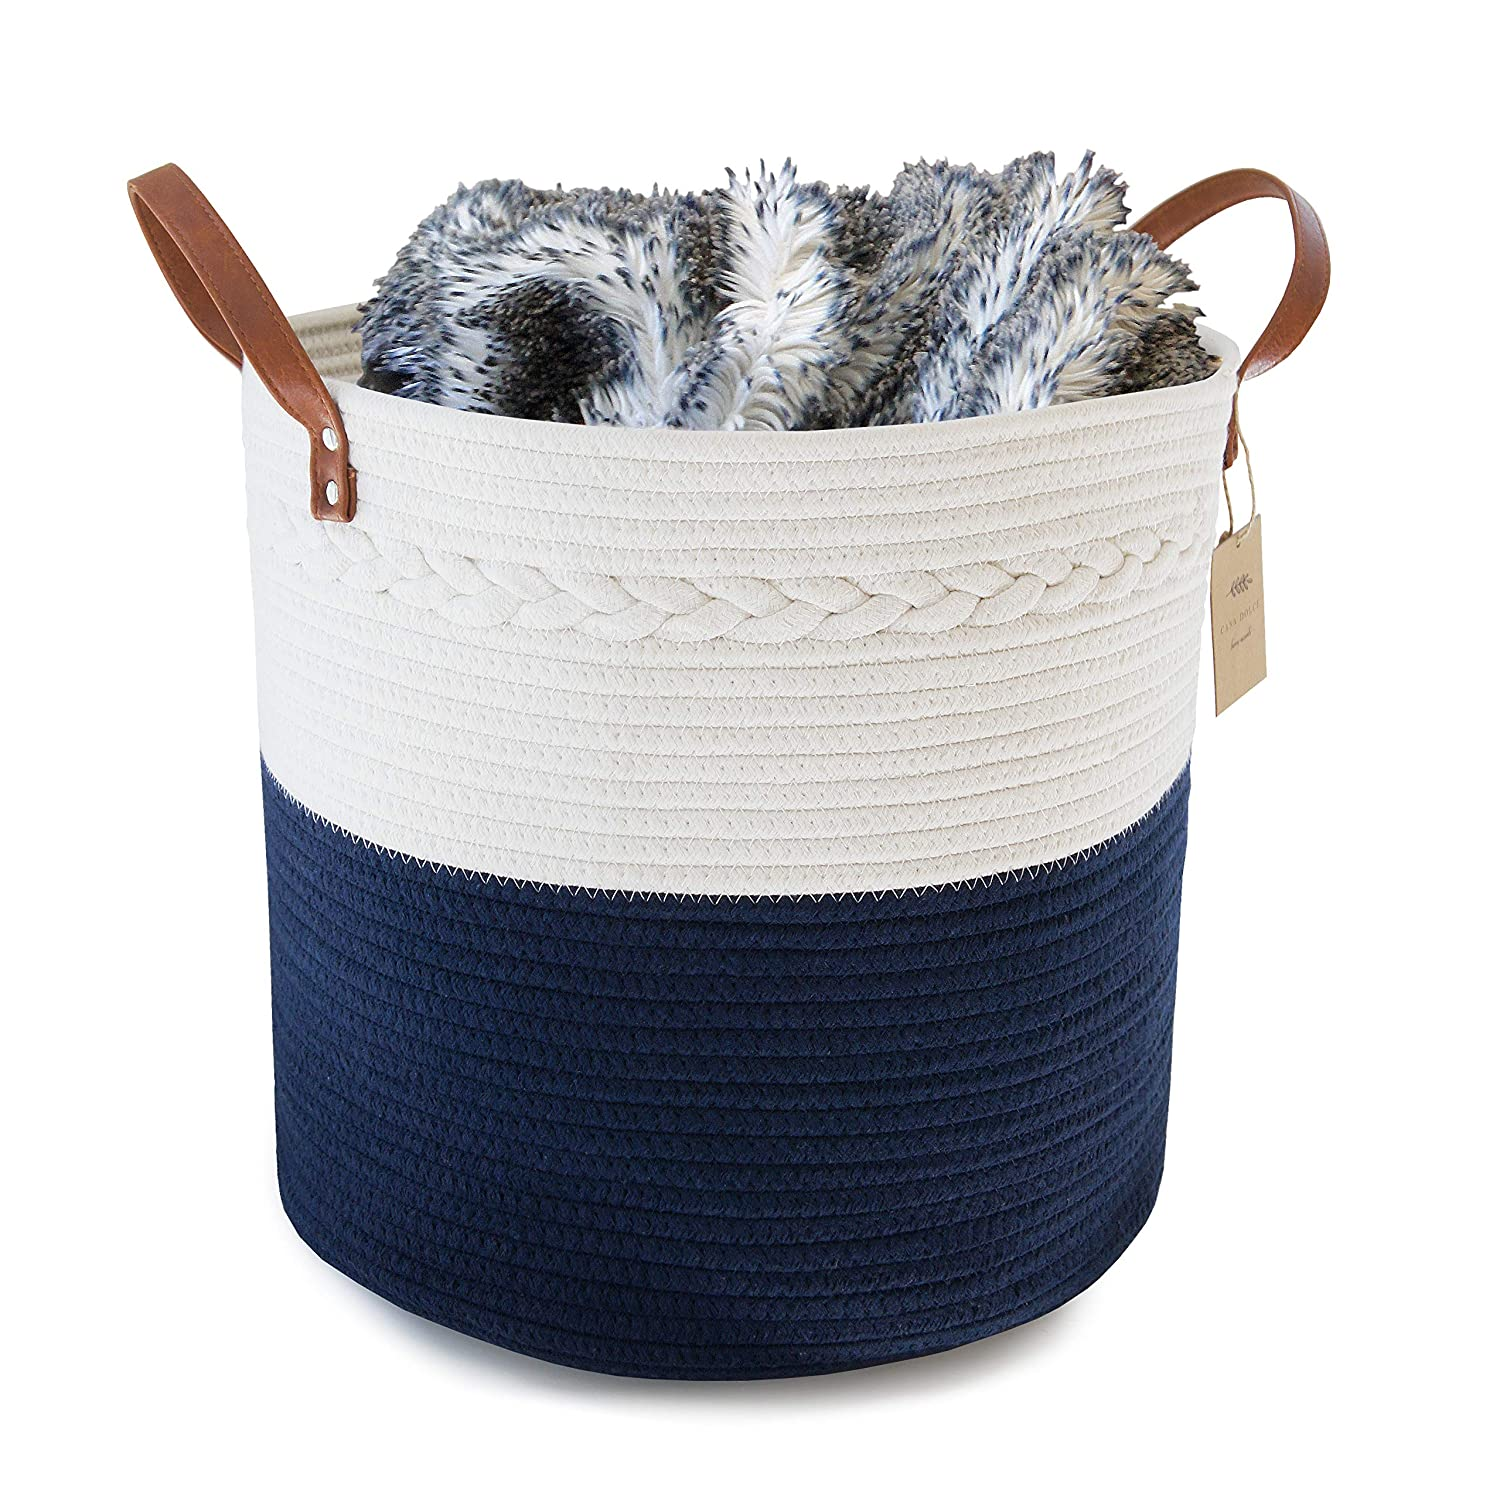 "Large Cotton Rope Storage Basket 15"" H x 13"" D - Home Decor Organizer for Laundry, Bath, Baby Care, Hamper, Nursery, Toys, and Blankets (Navy Blue and White) by Casa Dolce"